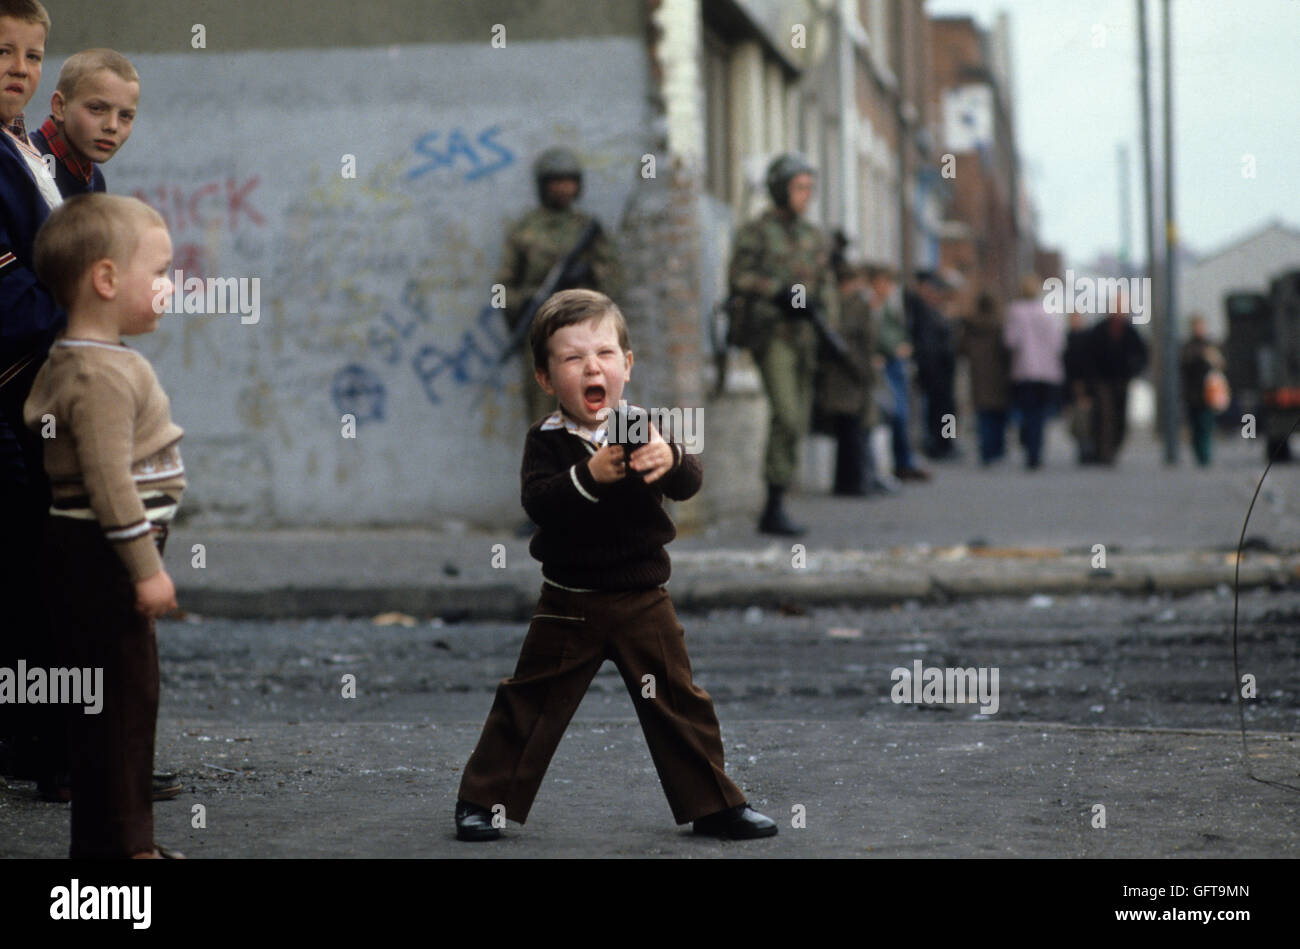 Kids playing guns, 1980s HOMER SYKES ARCHIVE - Stock Image